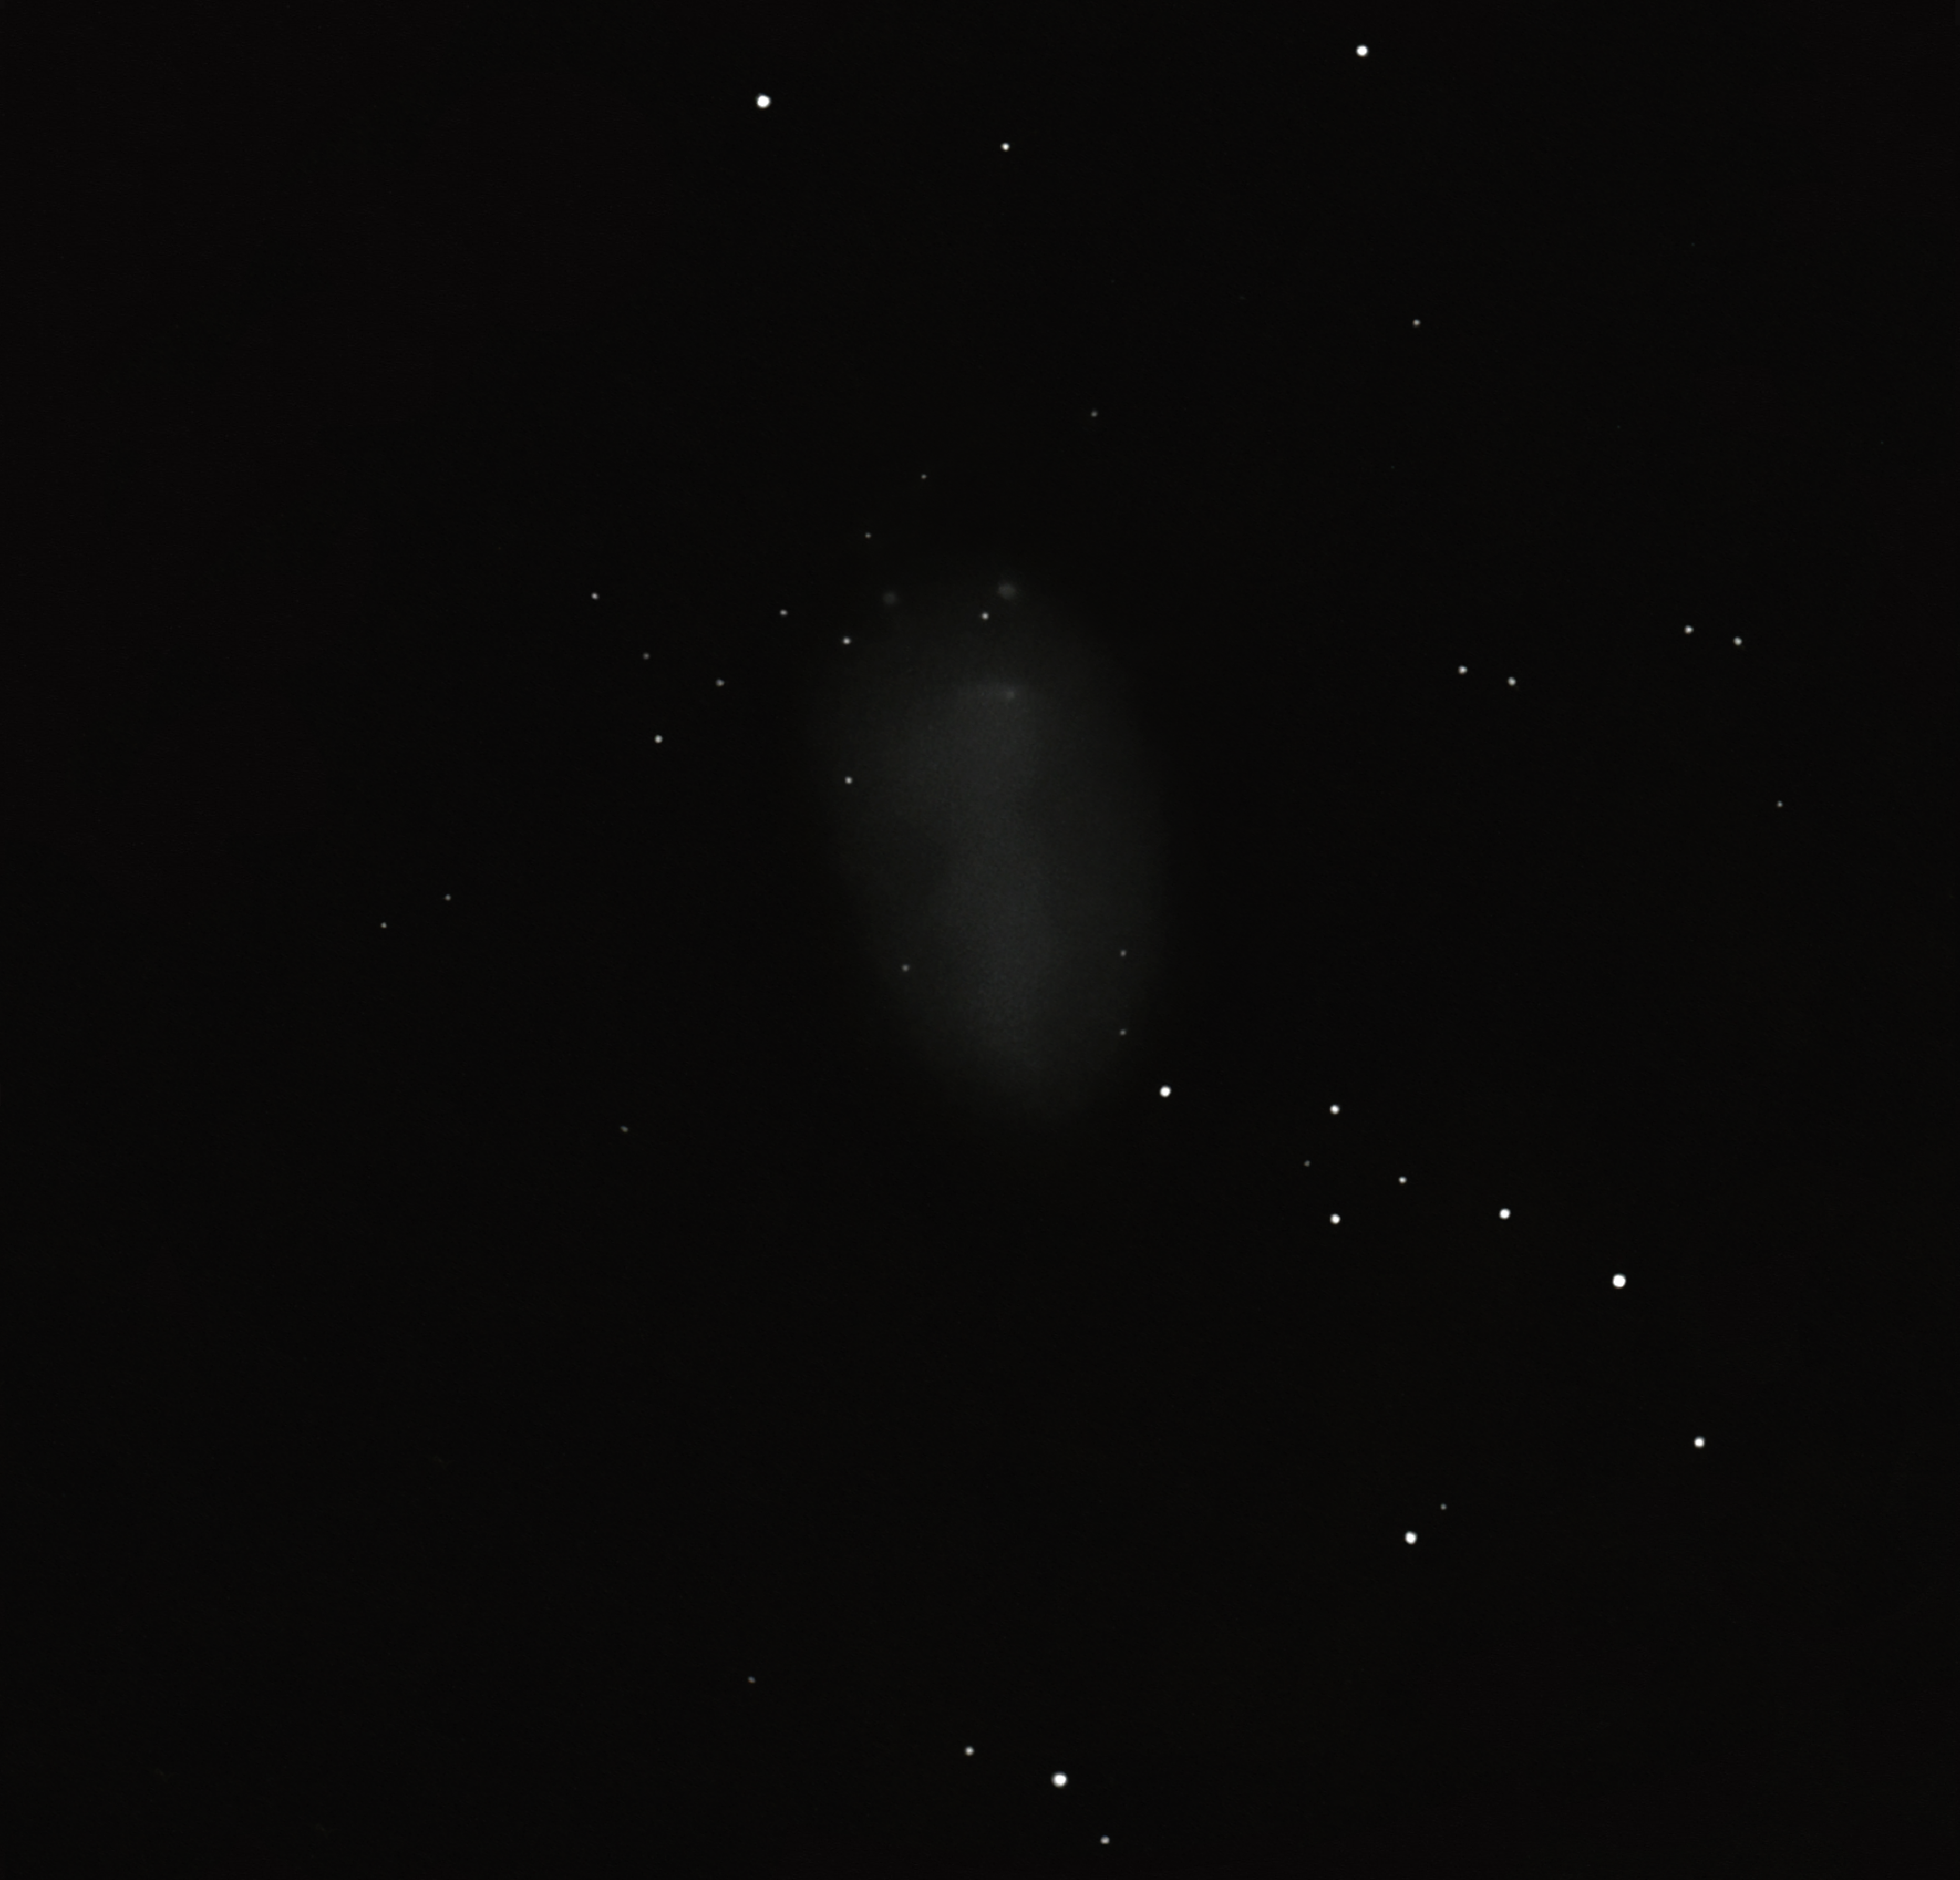 ngc6822-T381-md3c.png